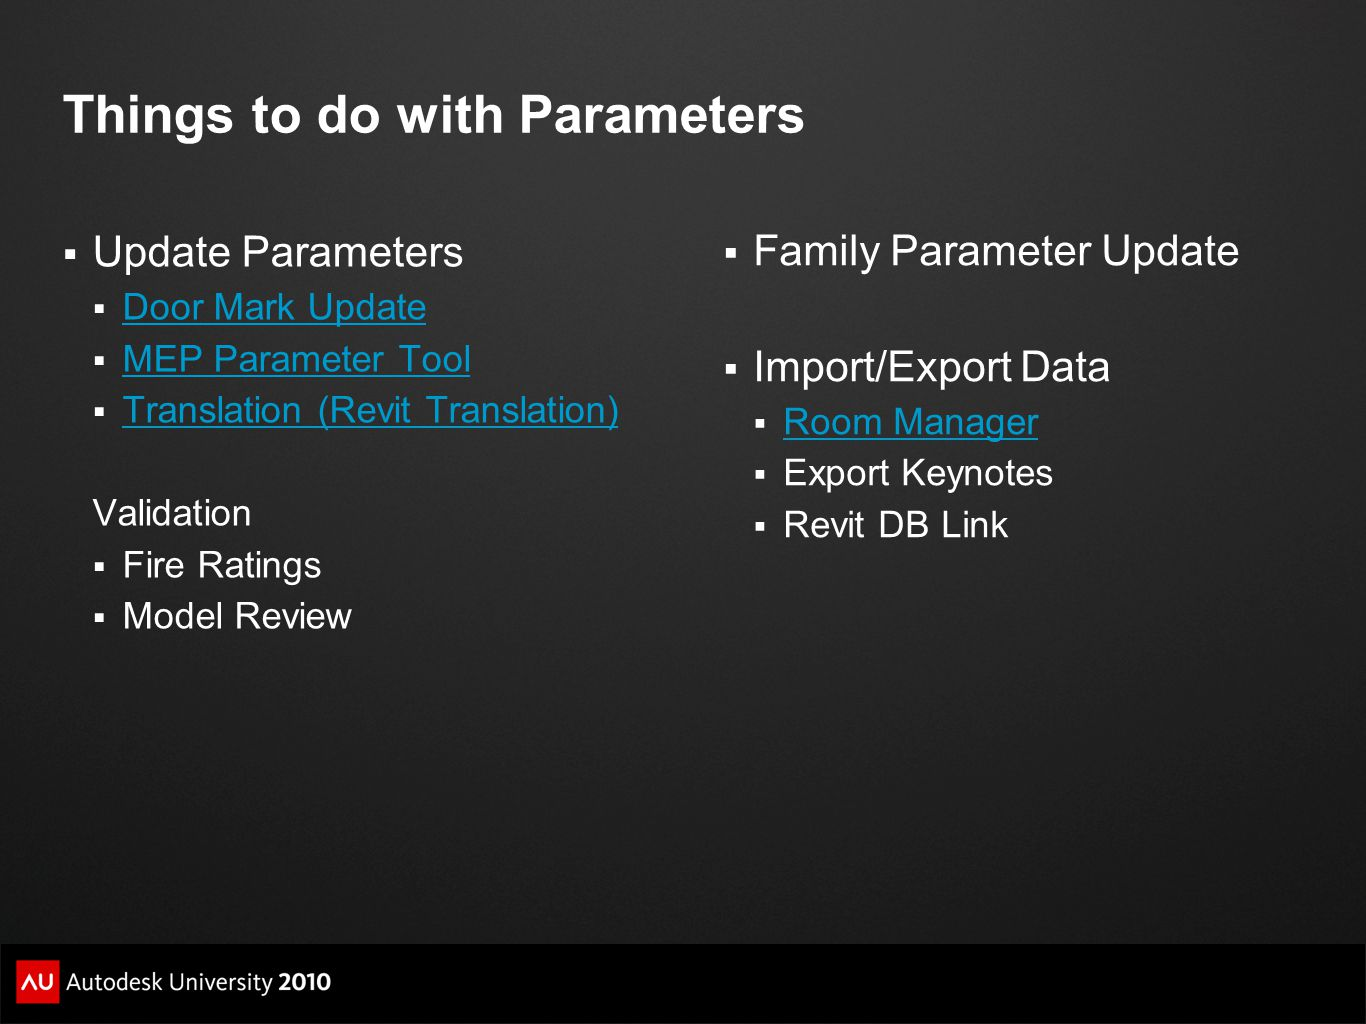 Things to do with Parameters